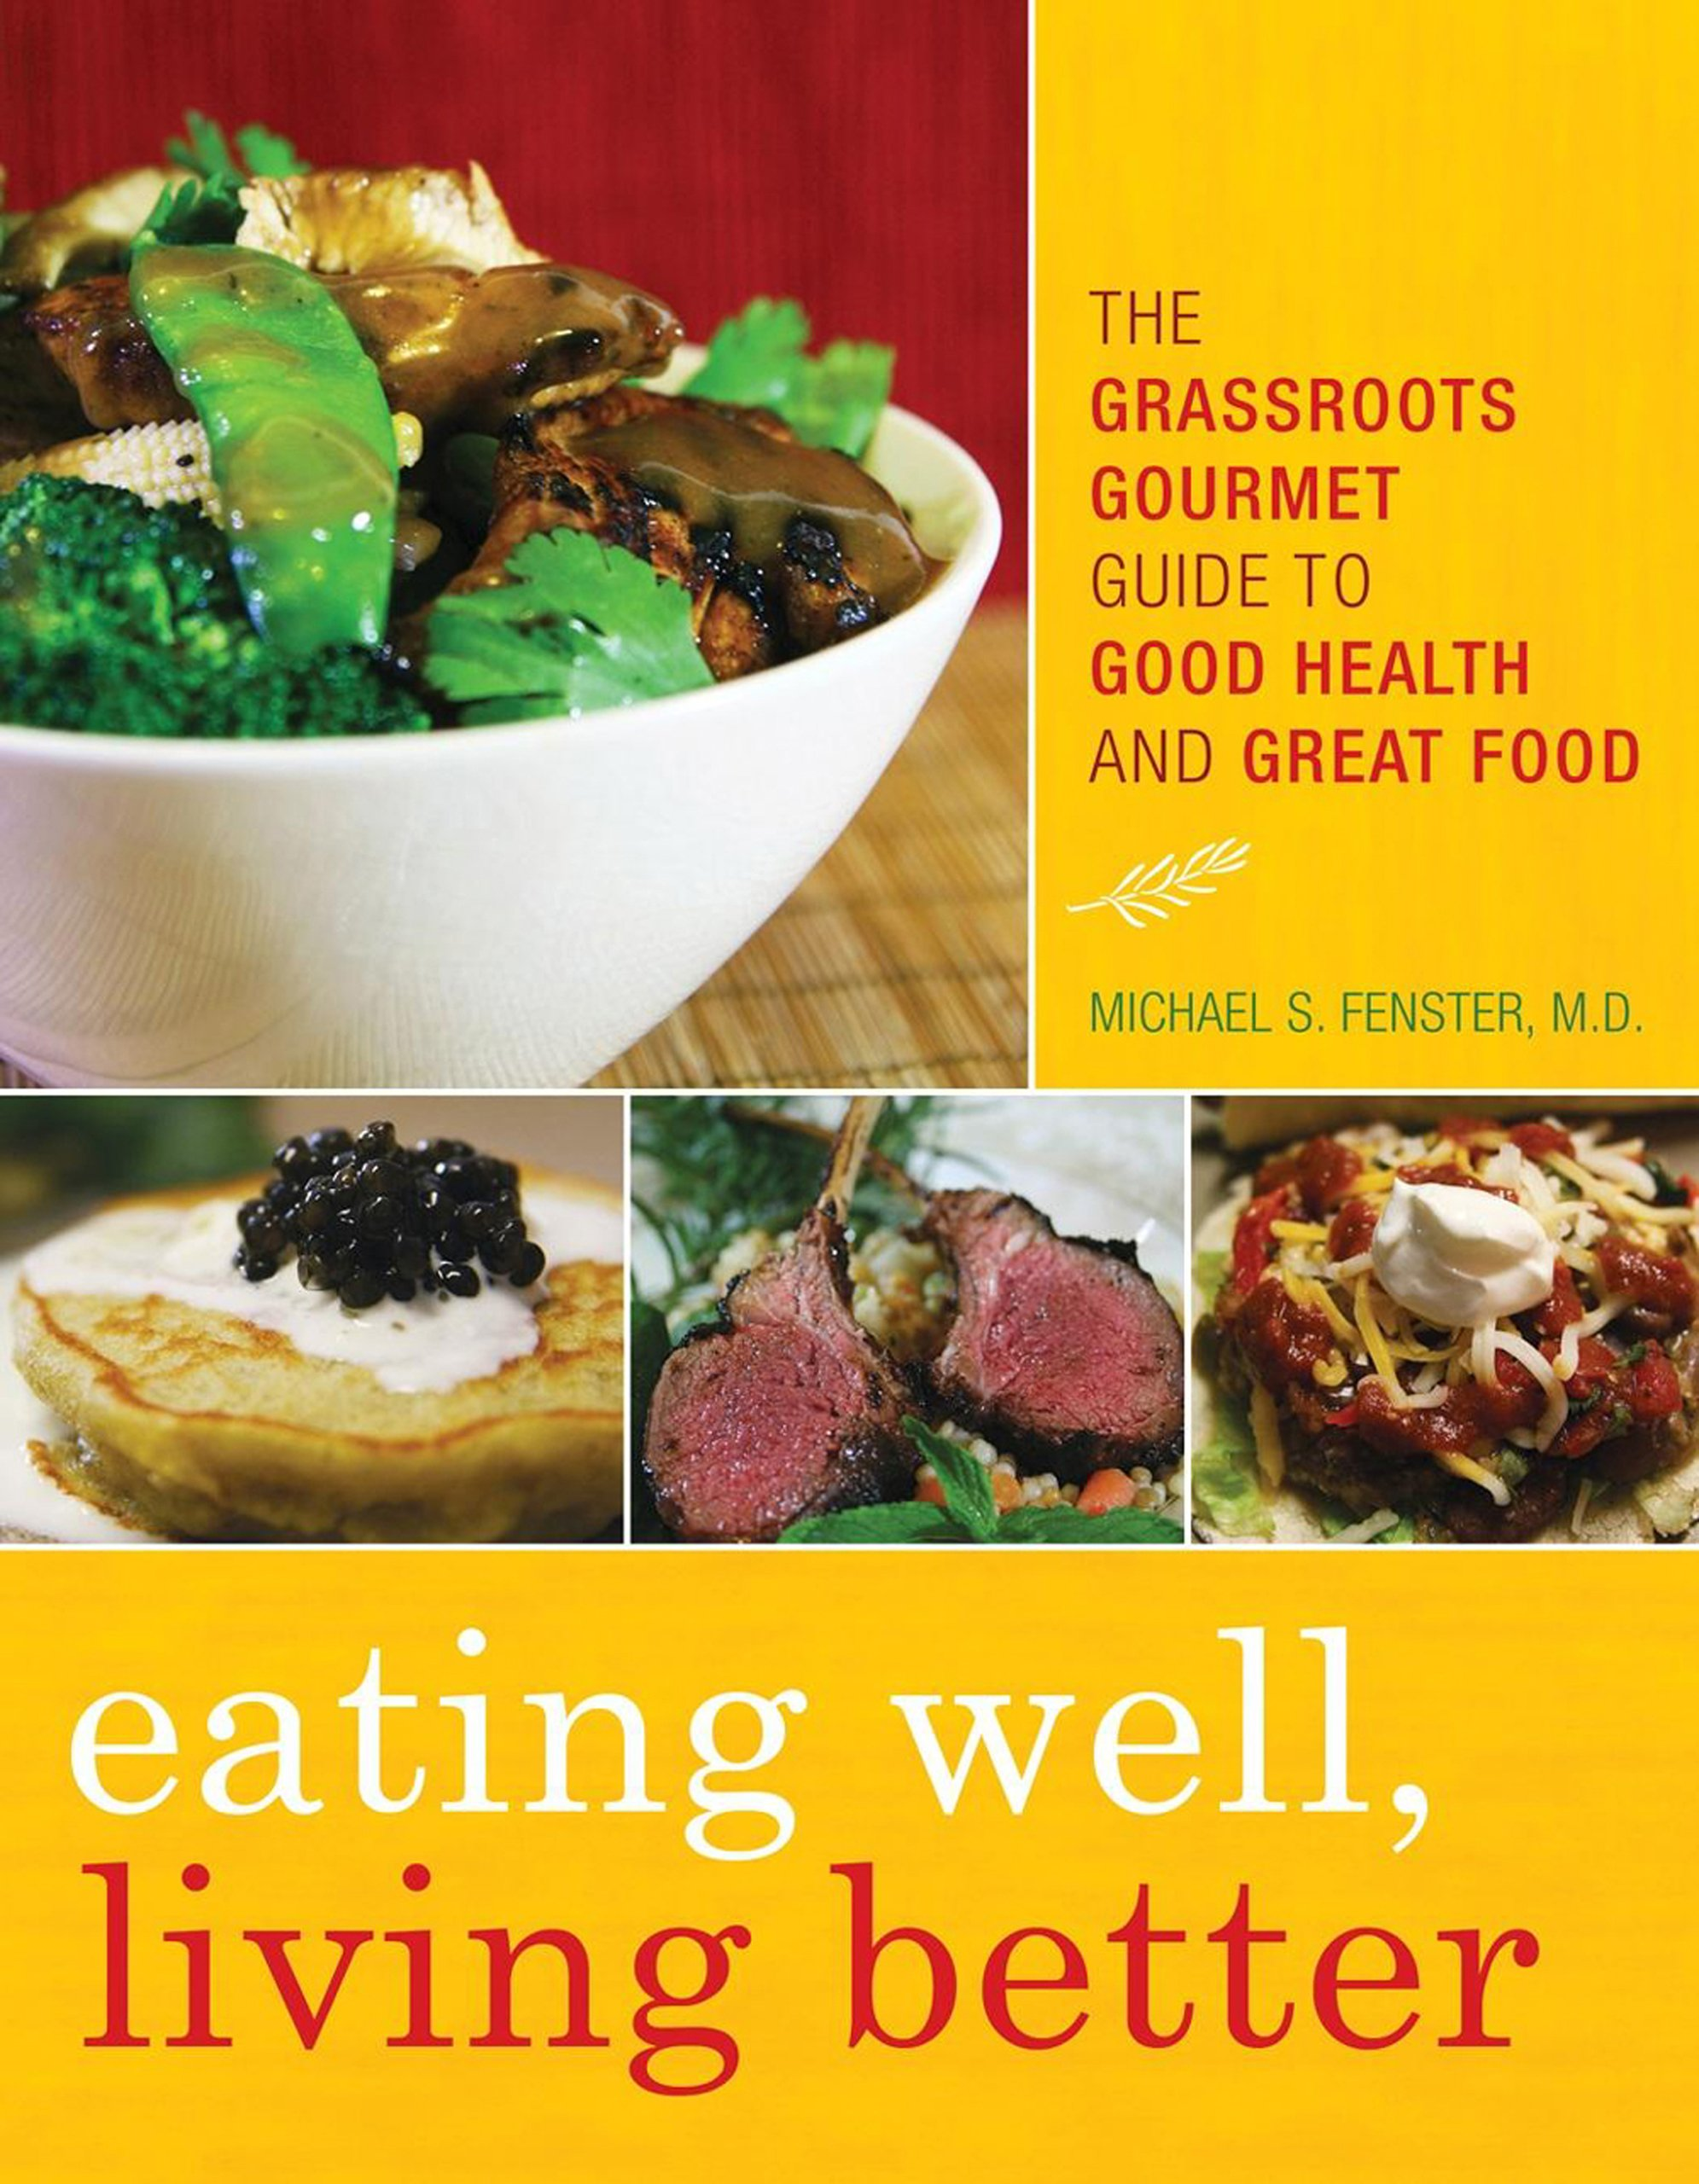 Food and good health - Eating Well Living Better The Grassroots Gourmet Guide To Good Health And Great Food Michael S Fenster 9781442213401 Amazon Com Books